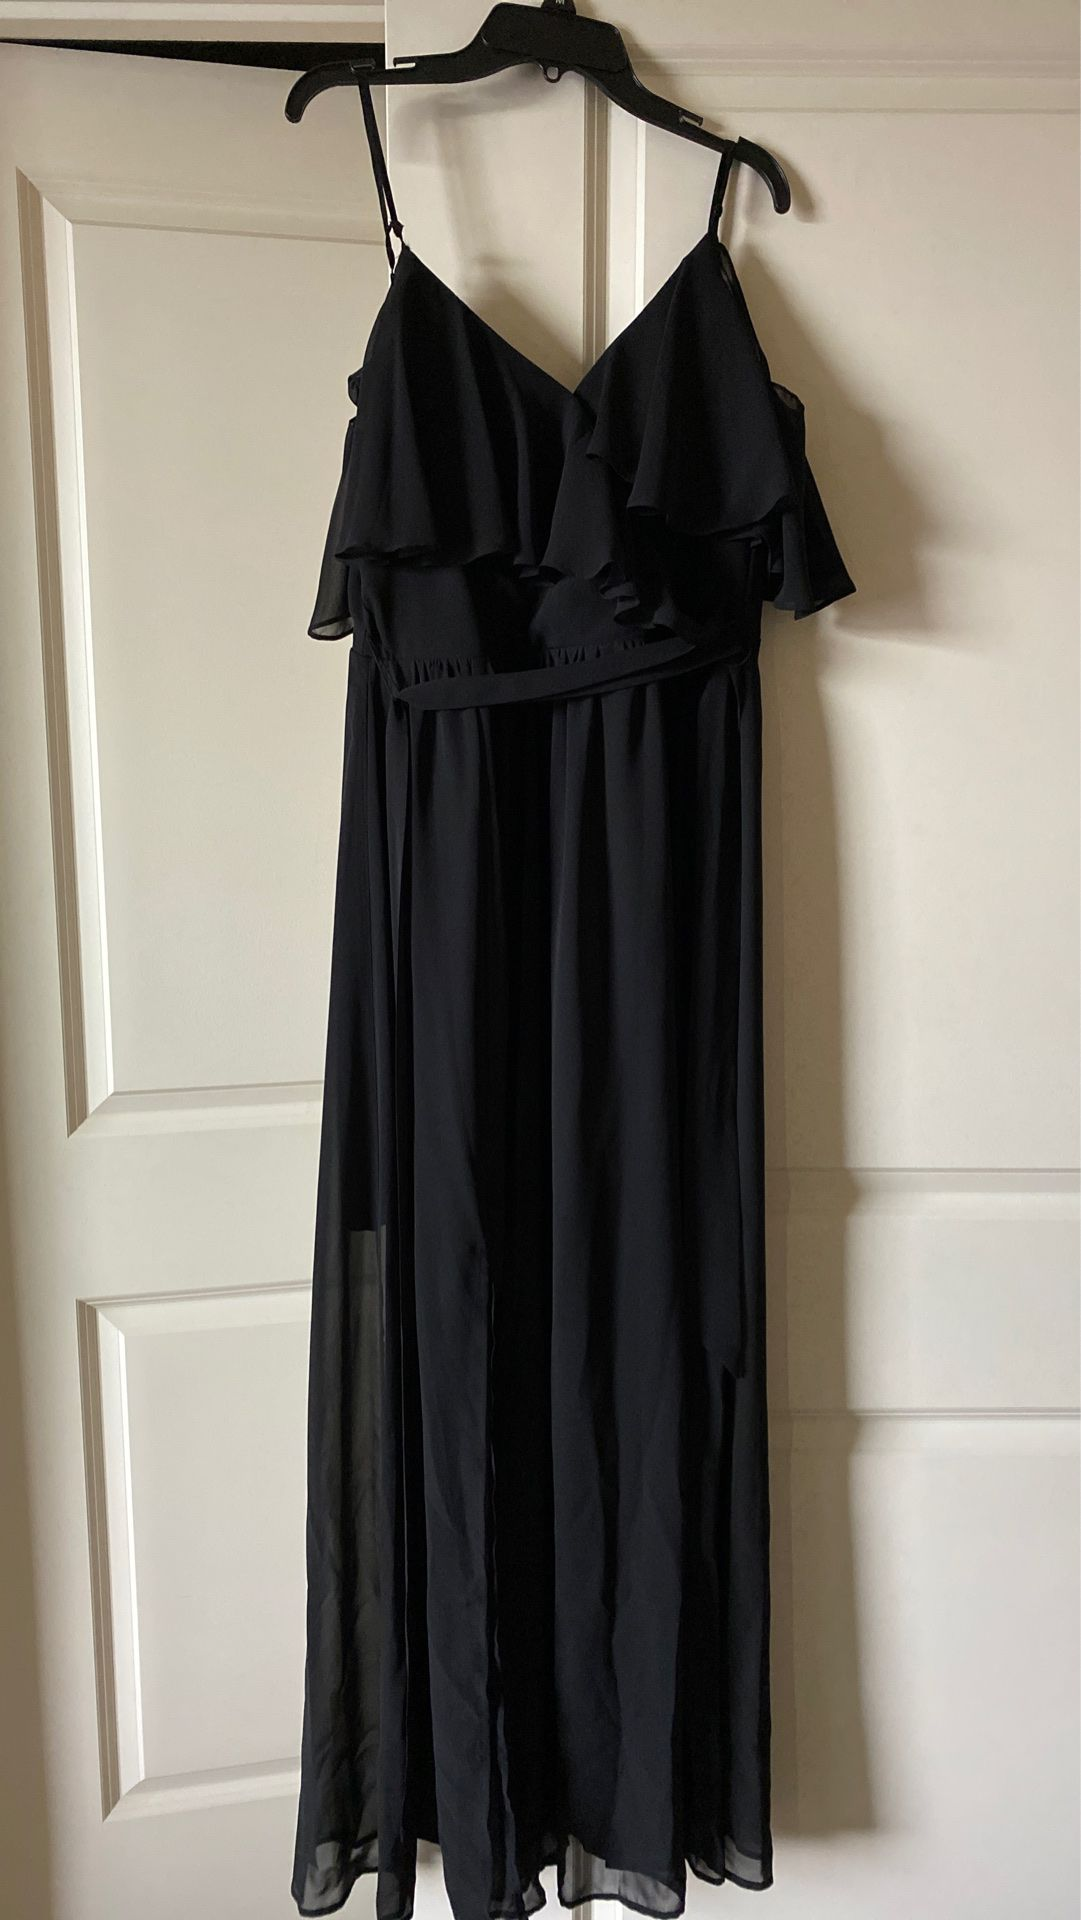 Black formal dress with sleeves